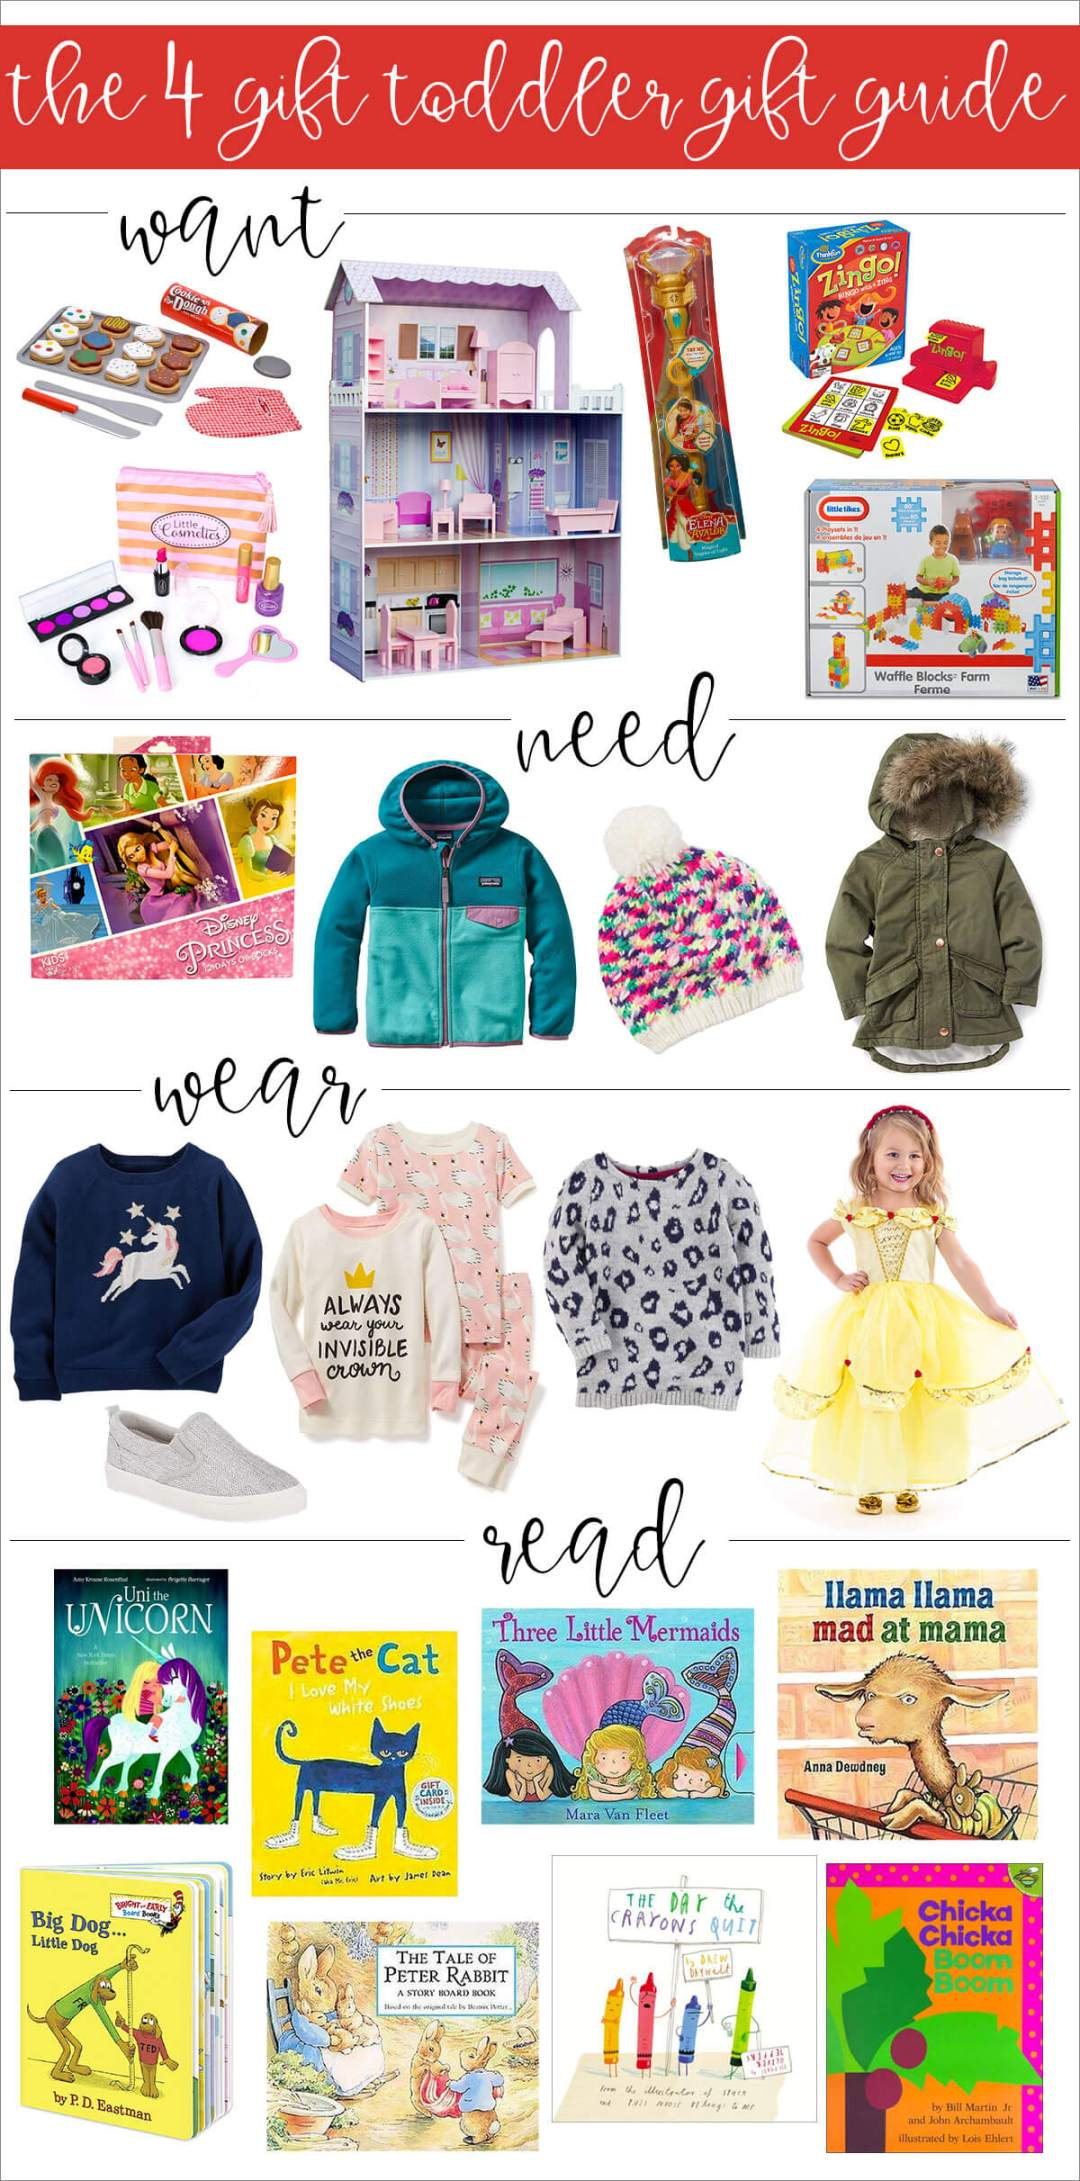 Toddler Girl Gift Guide: Want, Need, Wear, Read